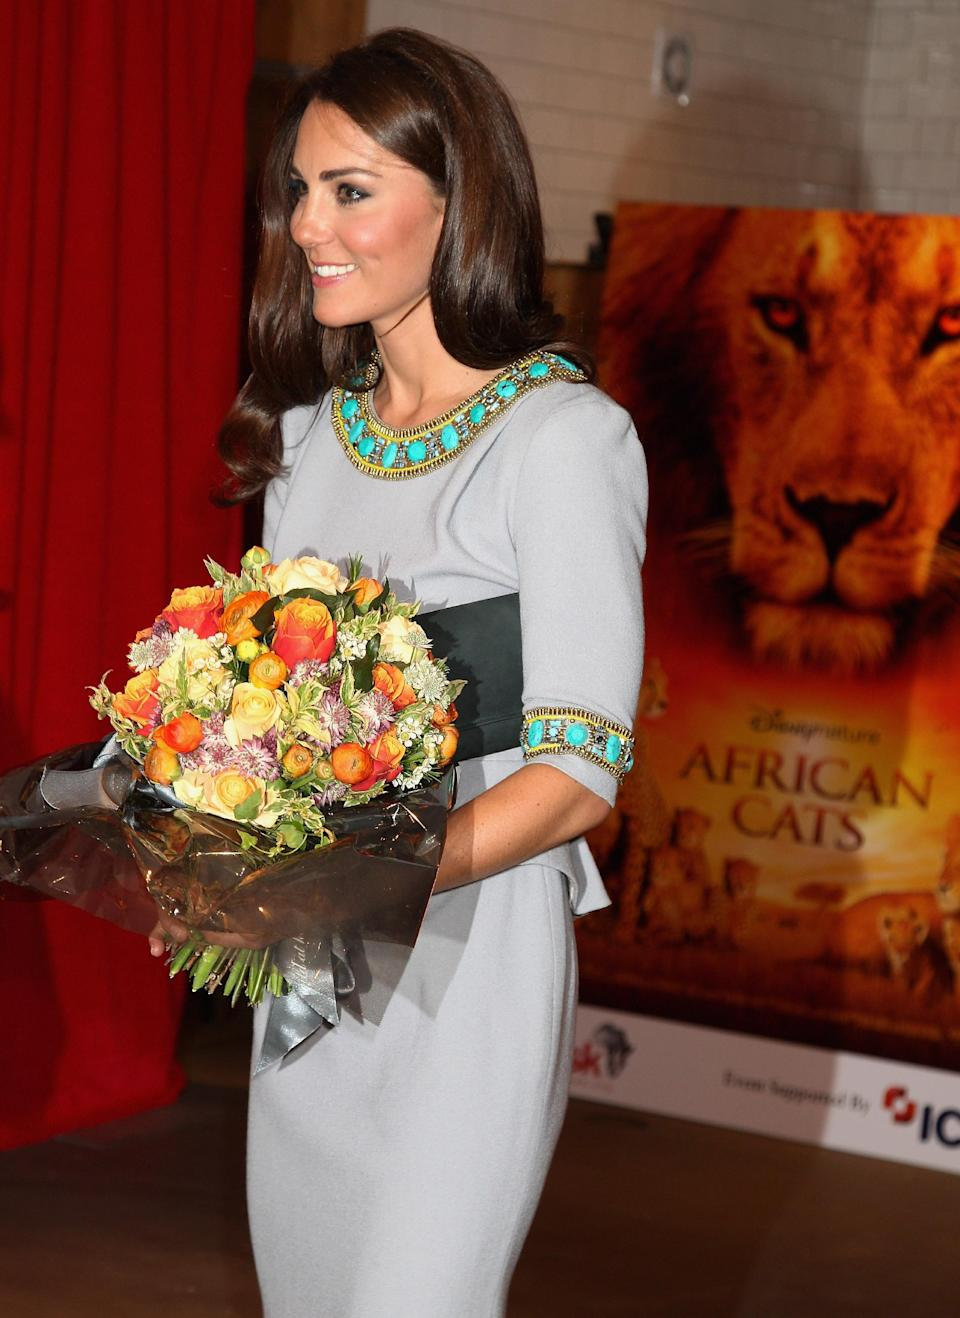 The Duchess of Cambridge attends the UK Premiere of 'African Cats' at BFI Southbank  Wednesday April 25, 2012 in London, England.  (AP Photo/Chris Jackson, Pool)